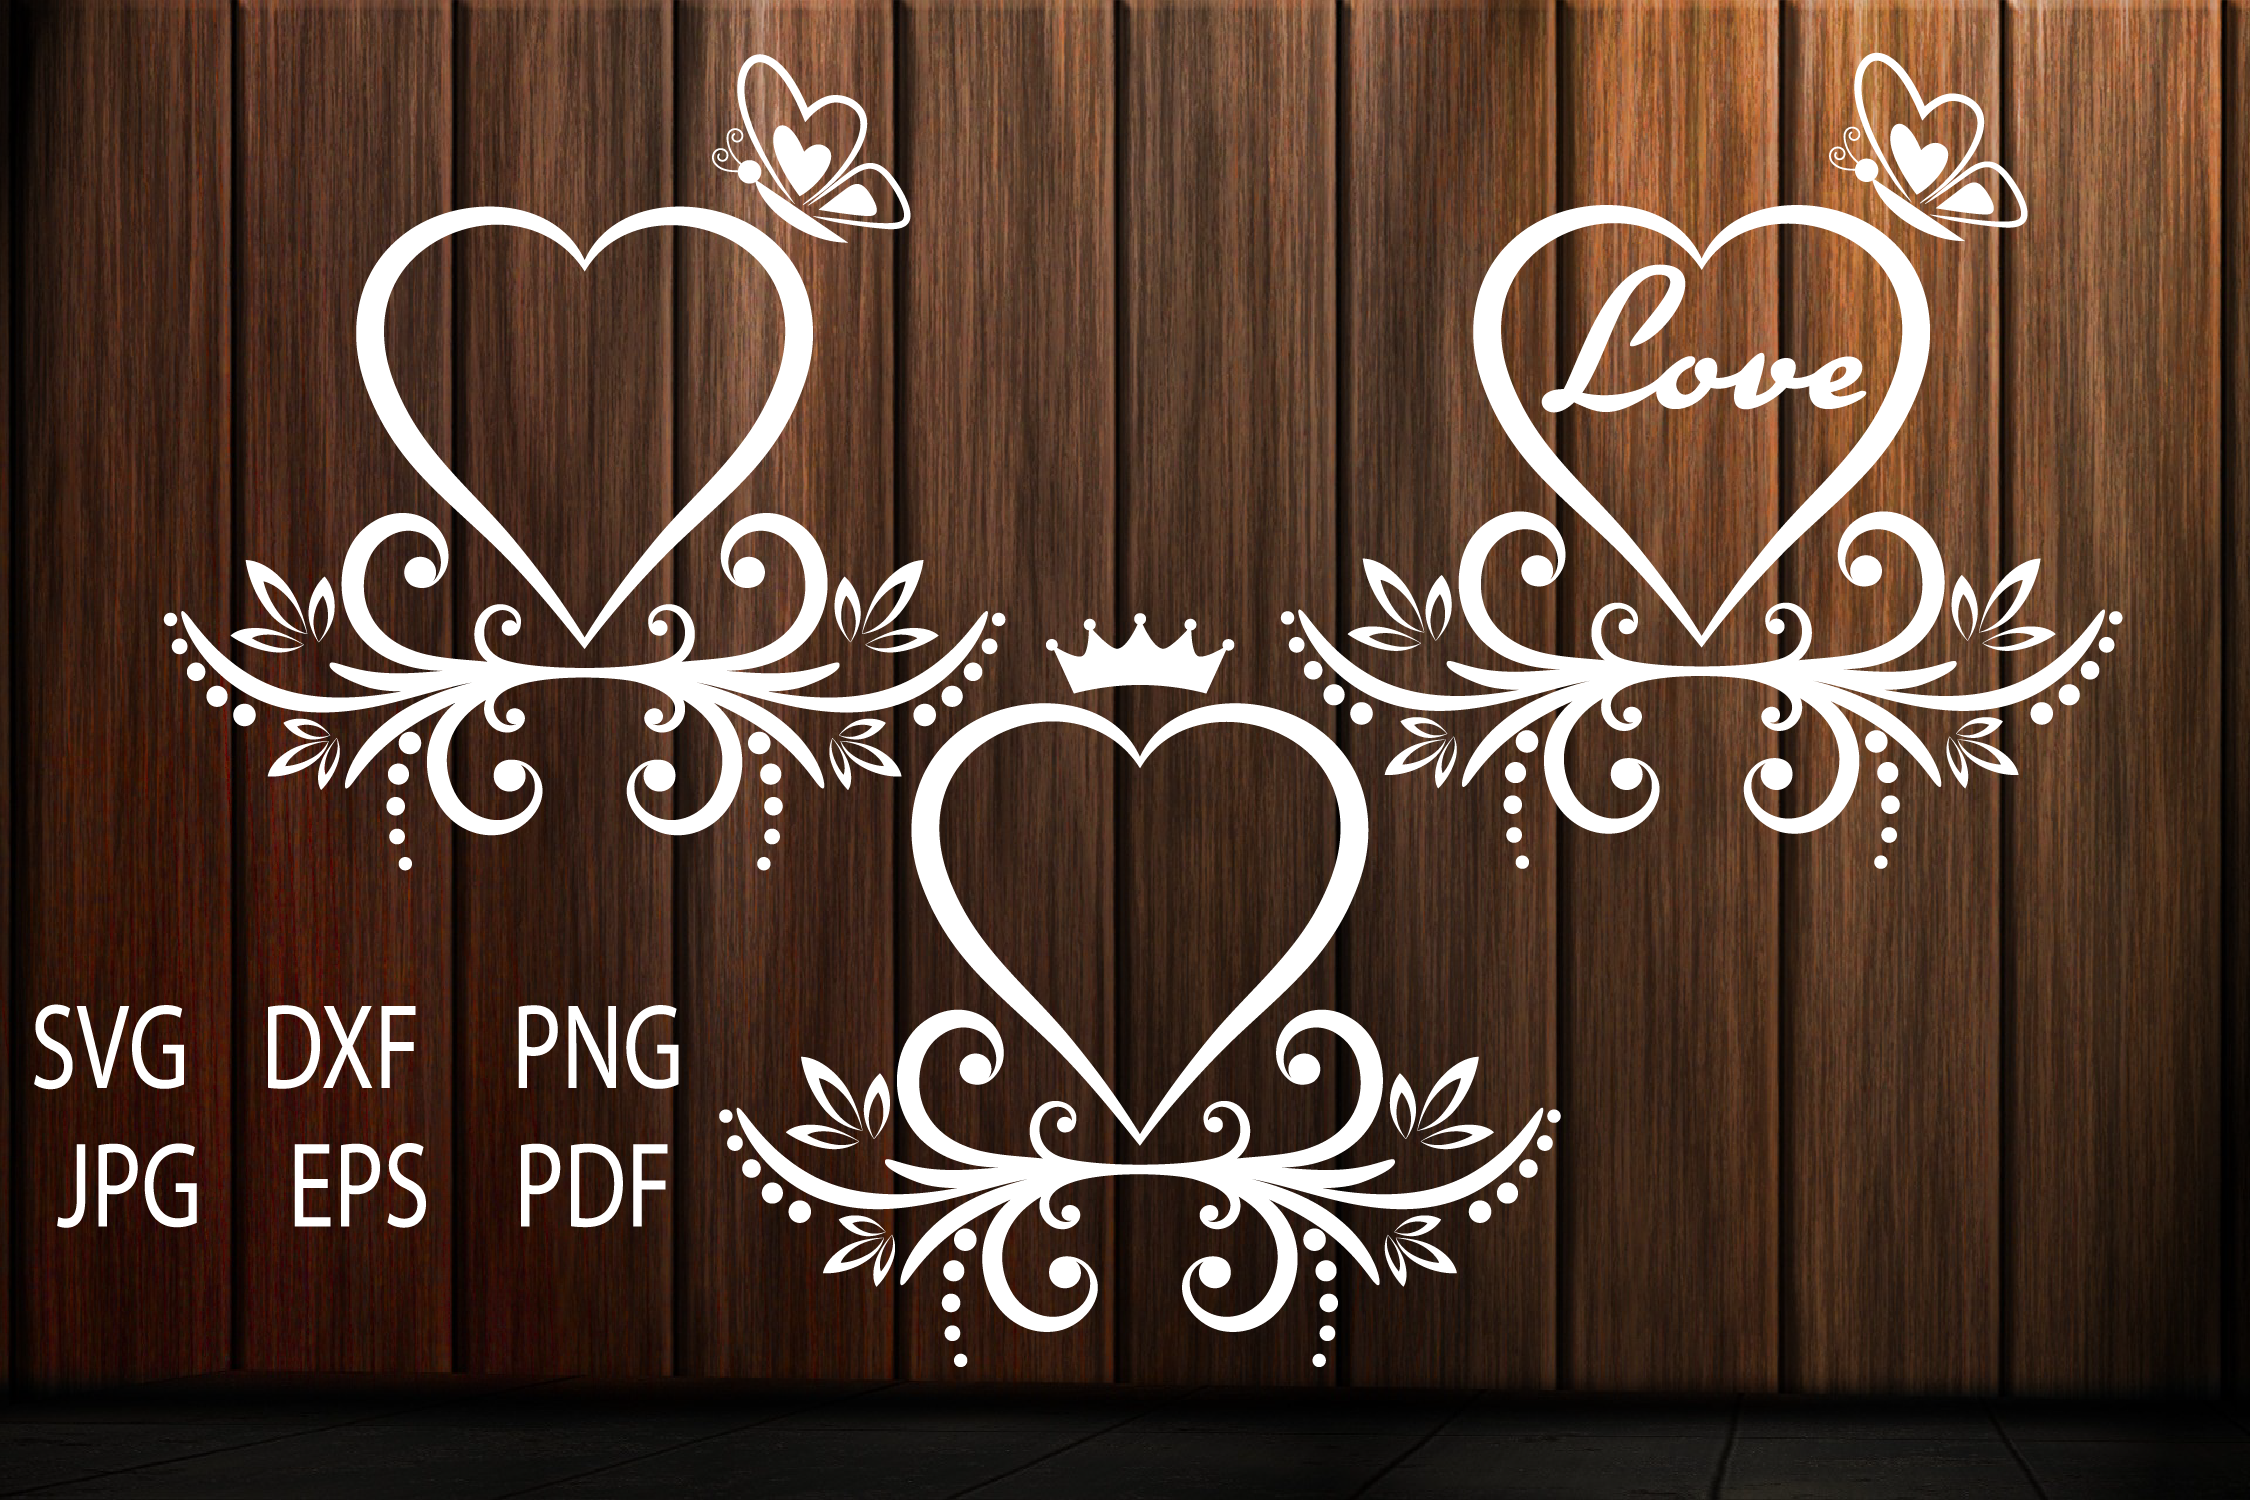 Heart SVG, Heart Cut Files, Love, Floral Heart SVG example image 1